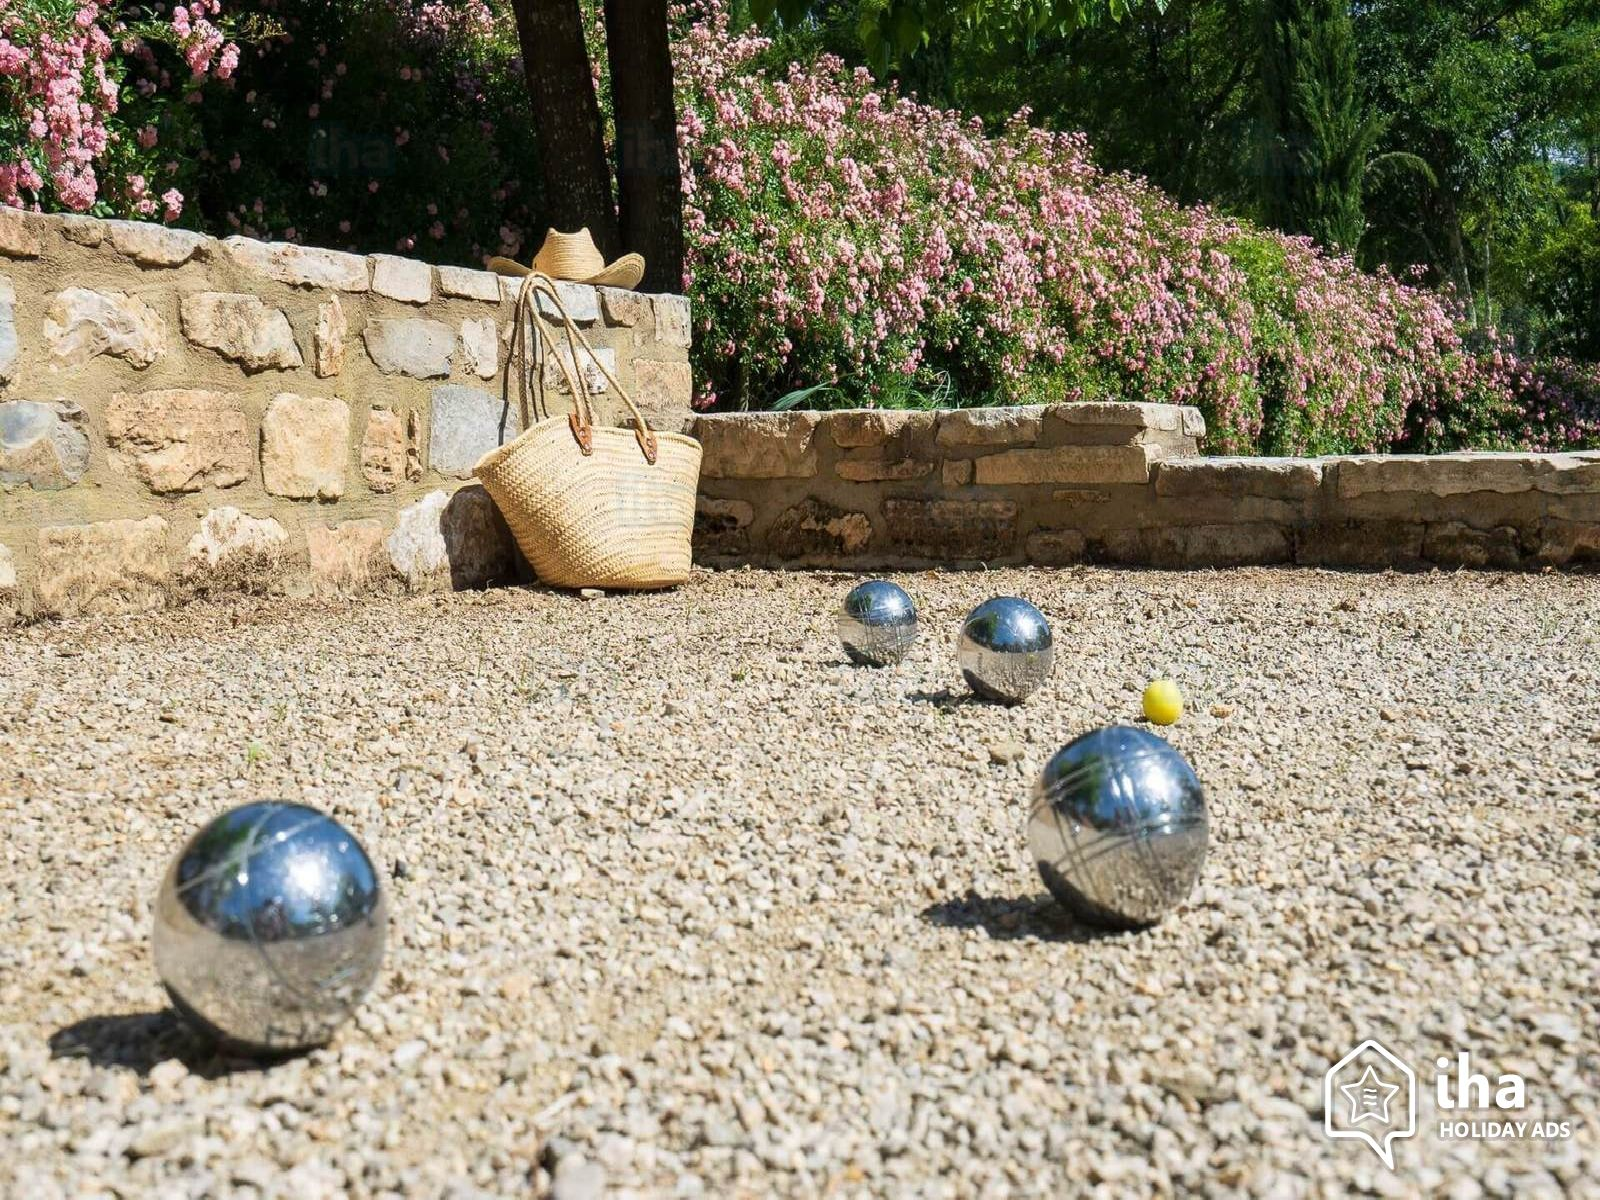 Throwing with balls - Jeu de Boule